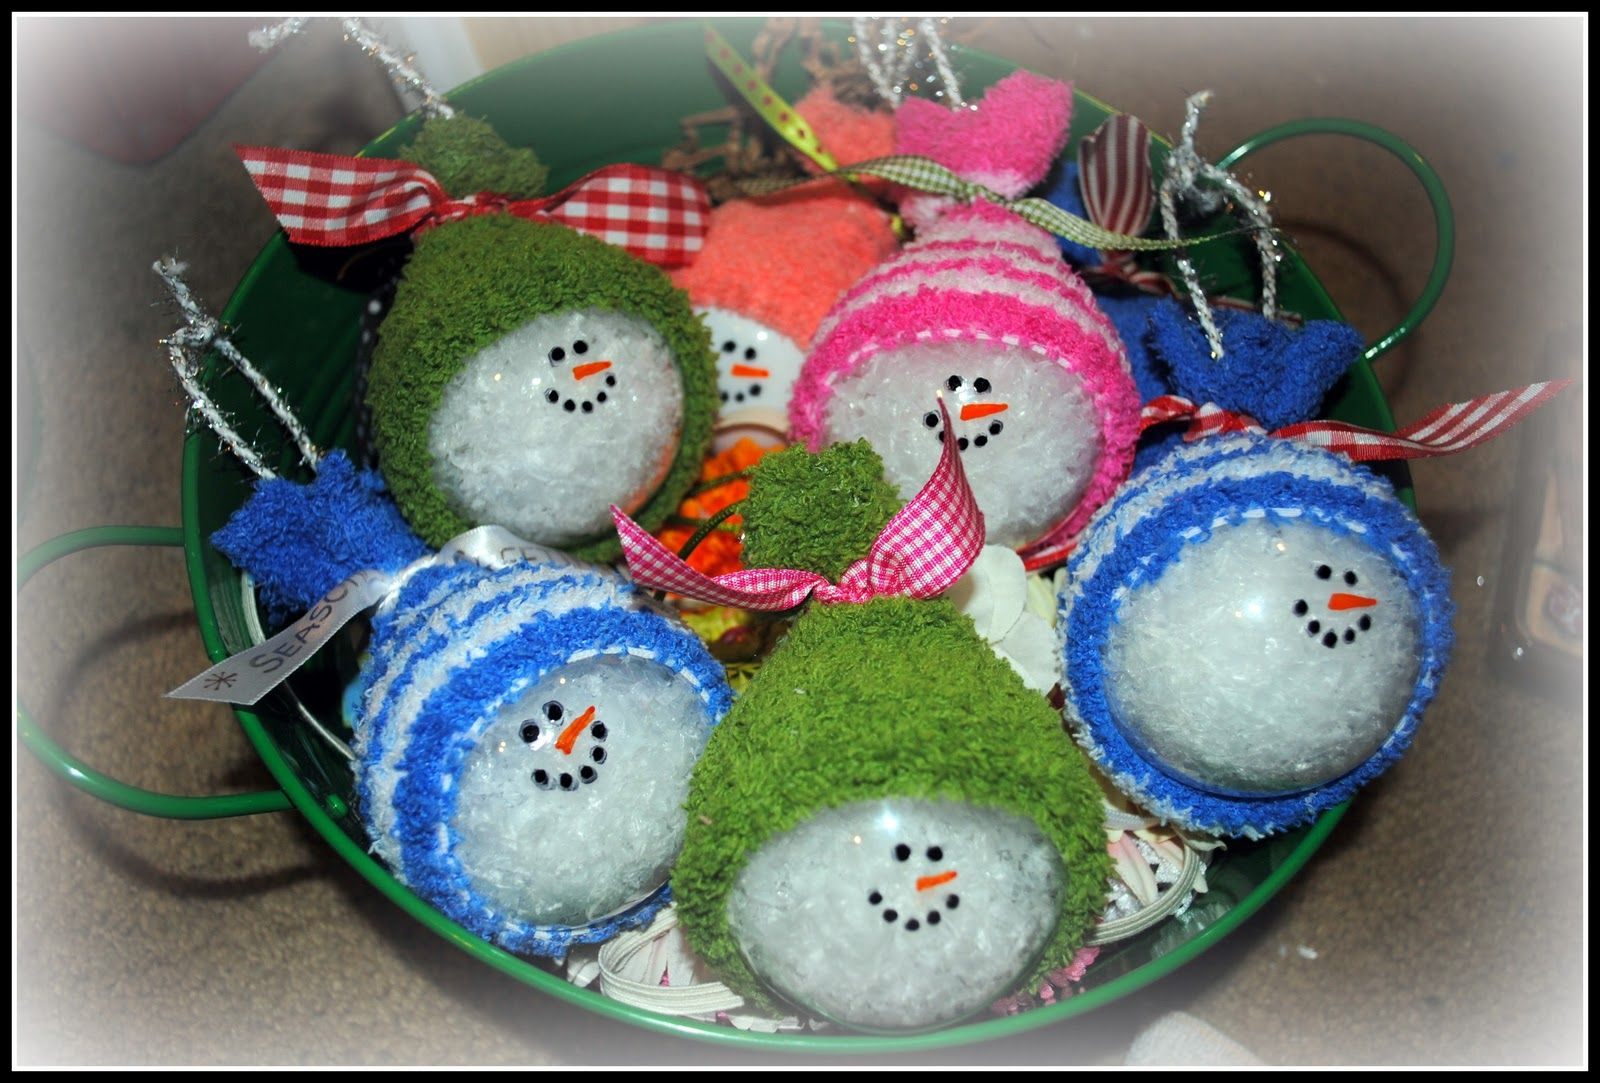 Snowman Ornaments! Clear ornaments, fill with fake snow